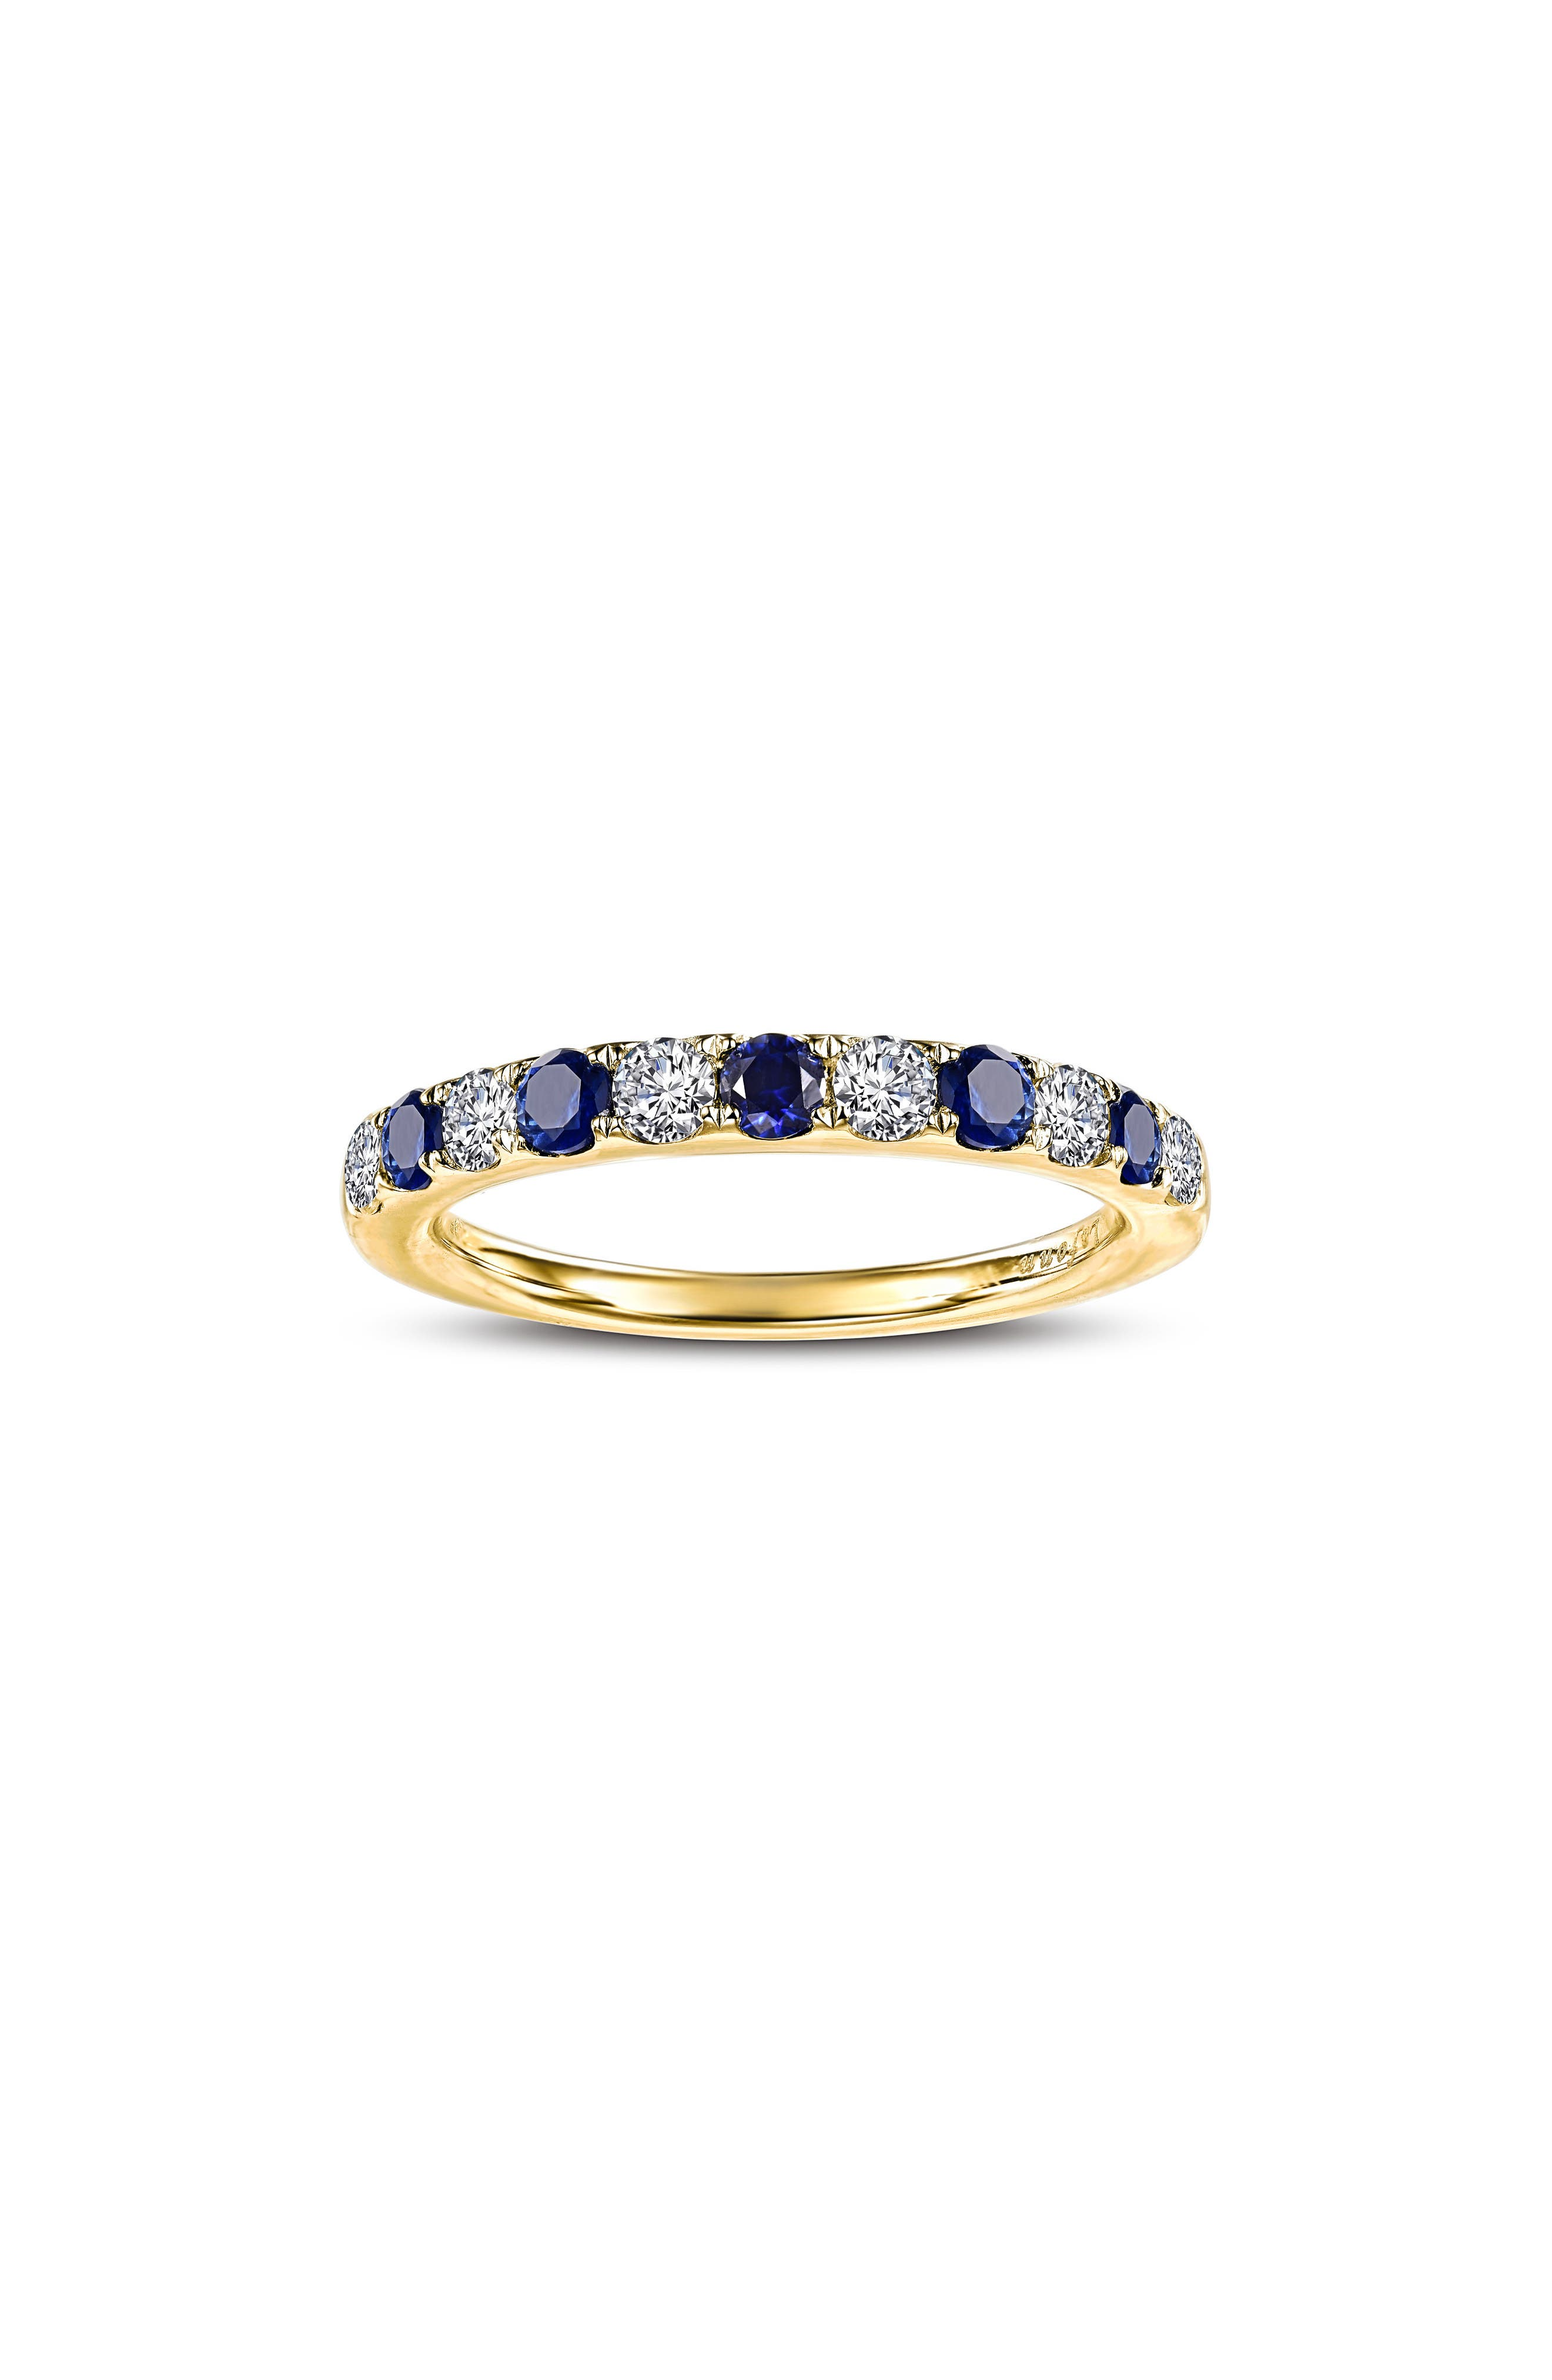 Fashion Jewelry Rings Large Purple Gem Gold Metal Dress Ring In Gift Box Size S